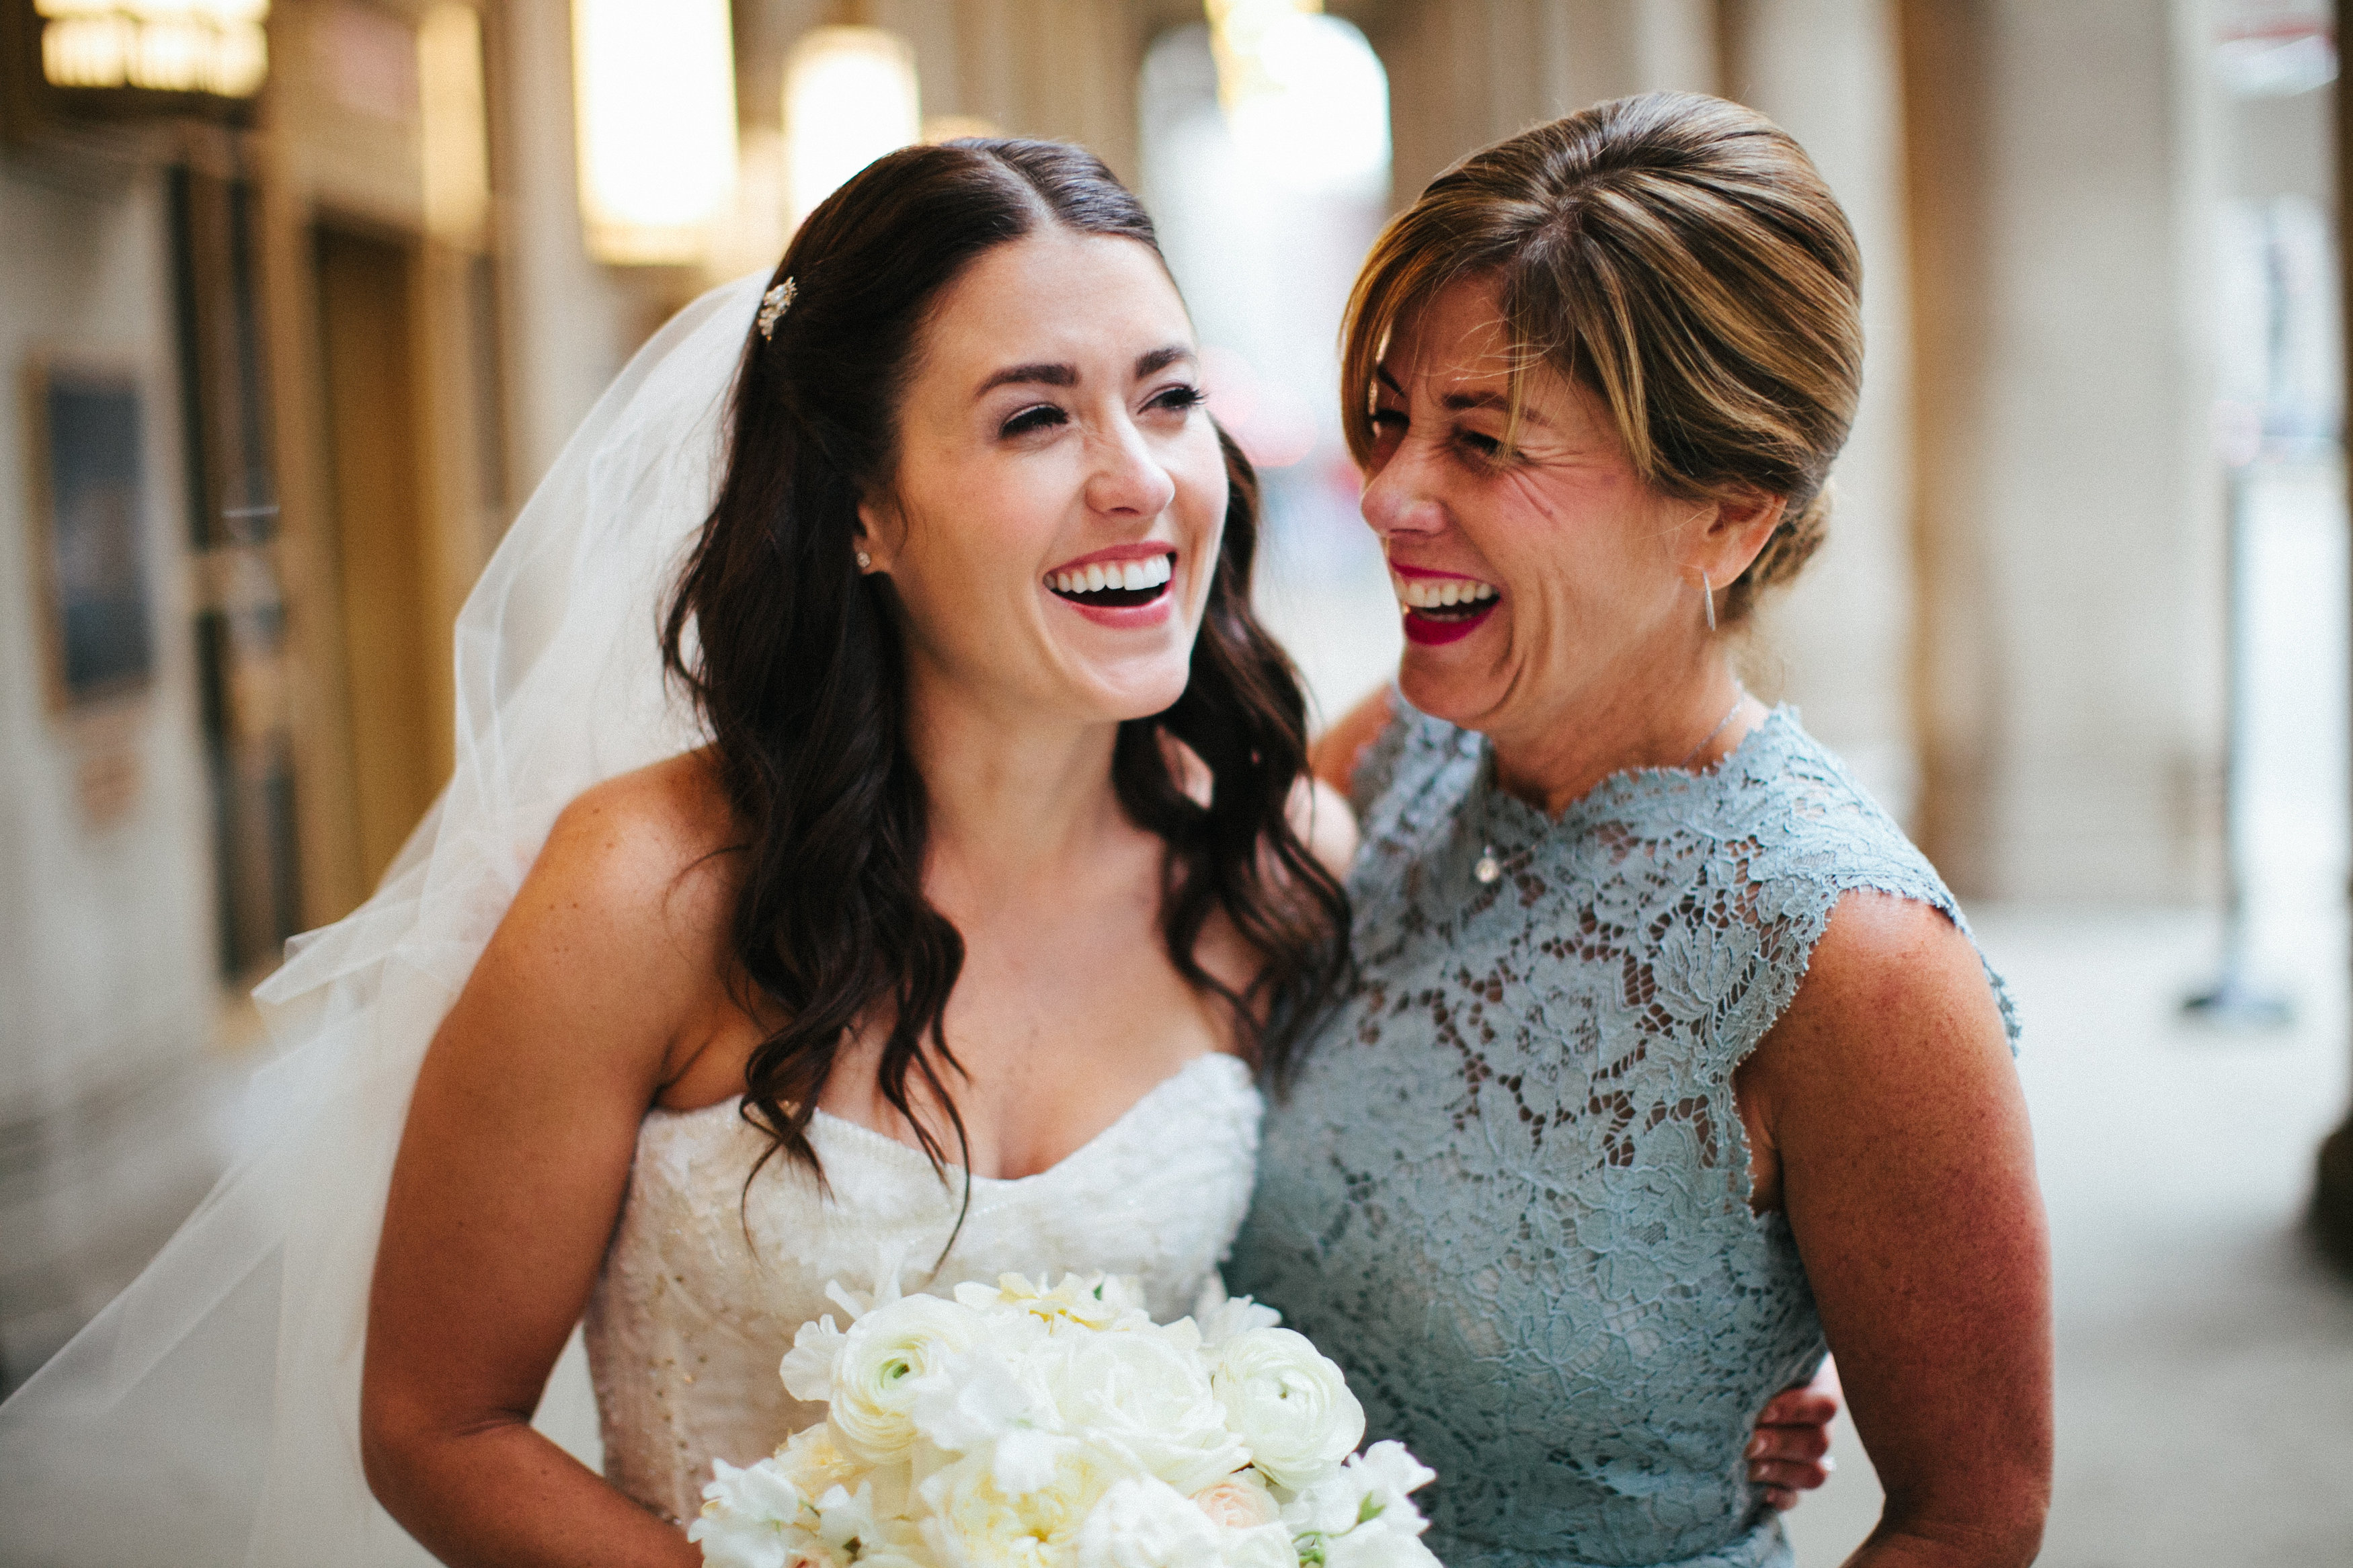 A Bride and Her Mother Laughing on Her Wedding Day